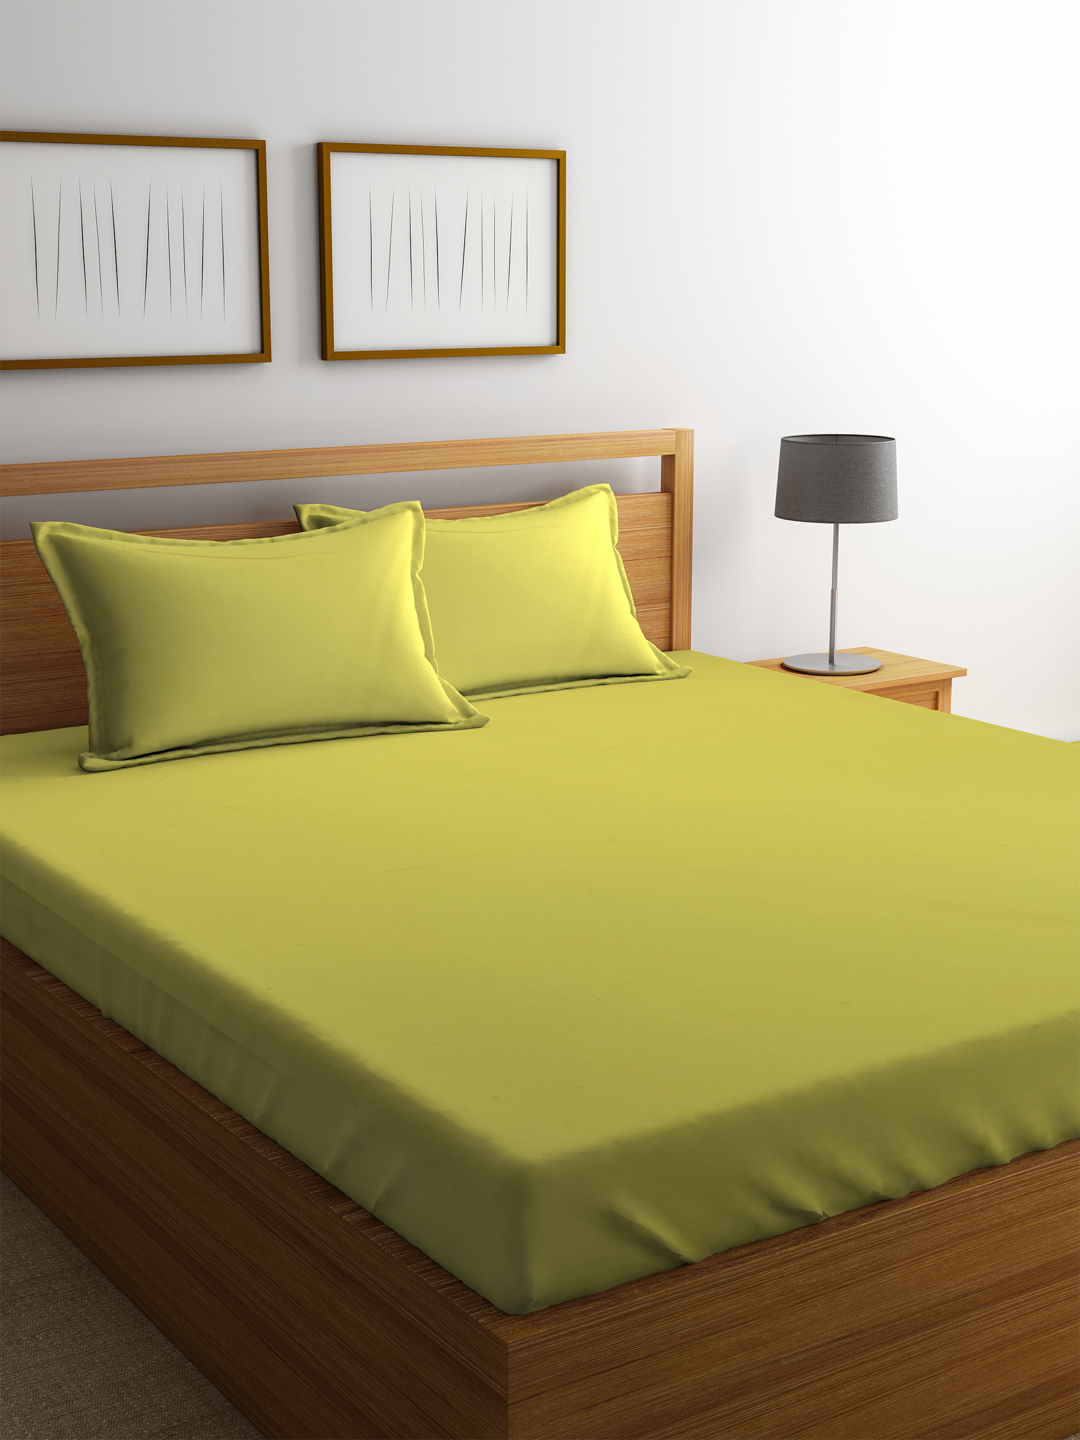 Portico Percale Cotton Double Bed Sheets in Green Colour by Portico